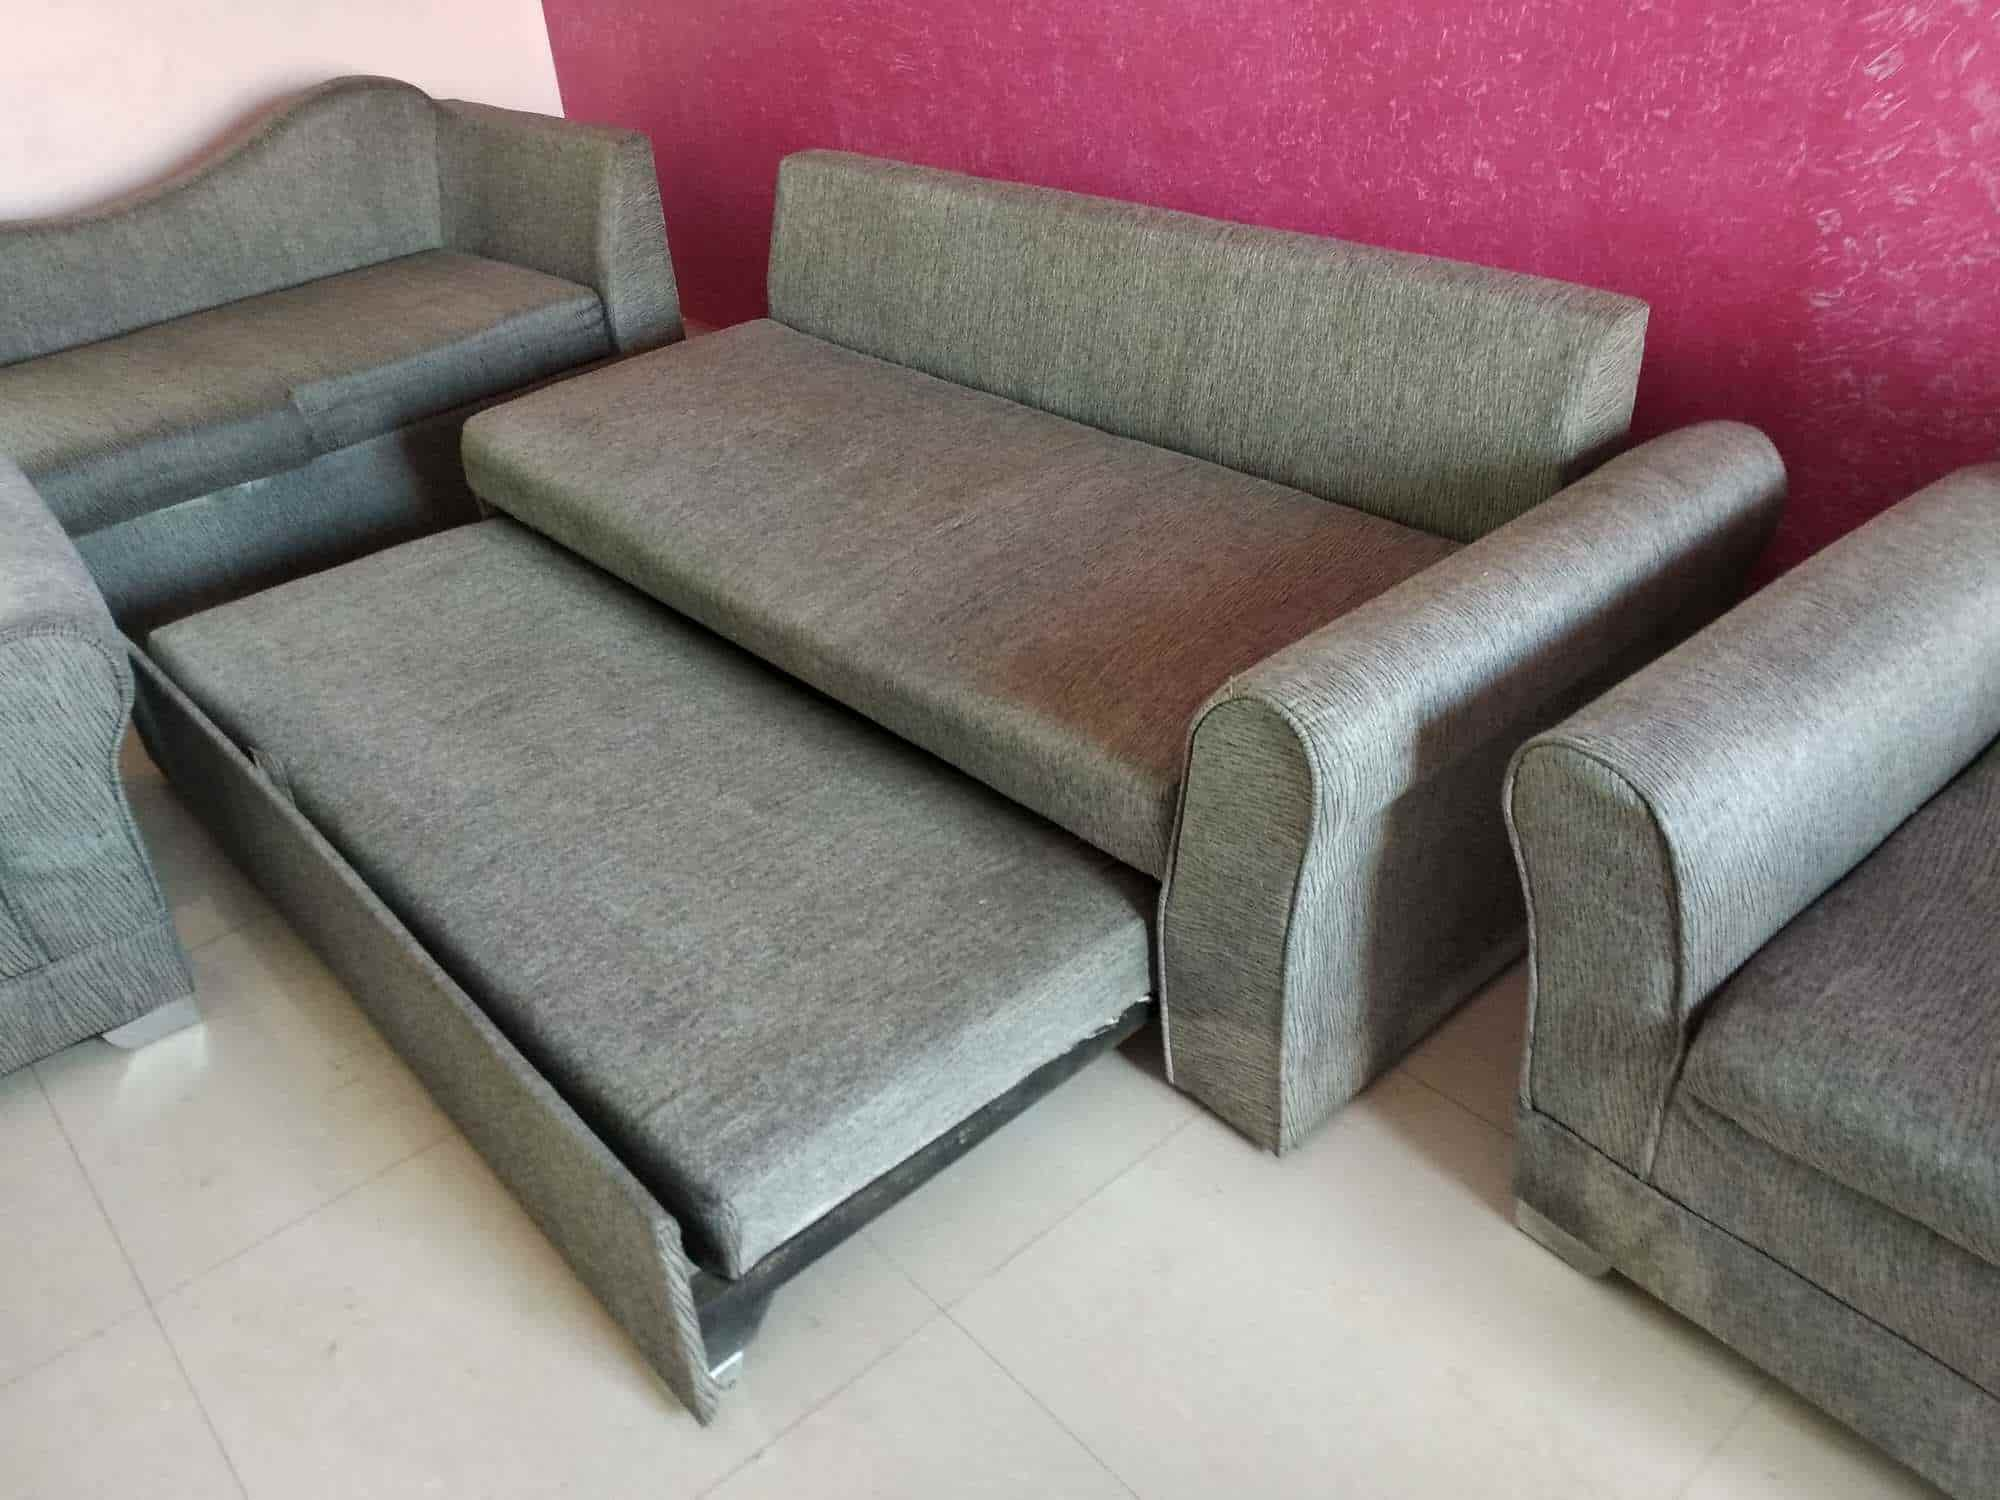 sofa cleaning services mumbai side tables in pune gradschoolfairs